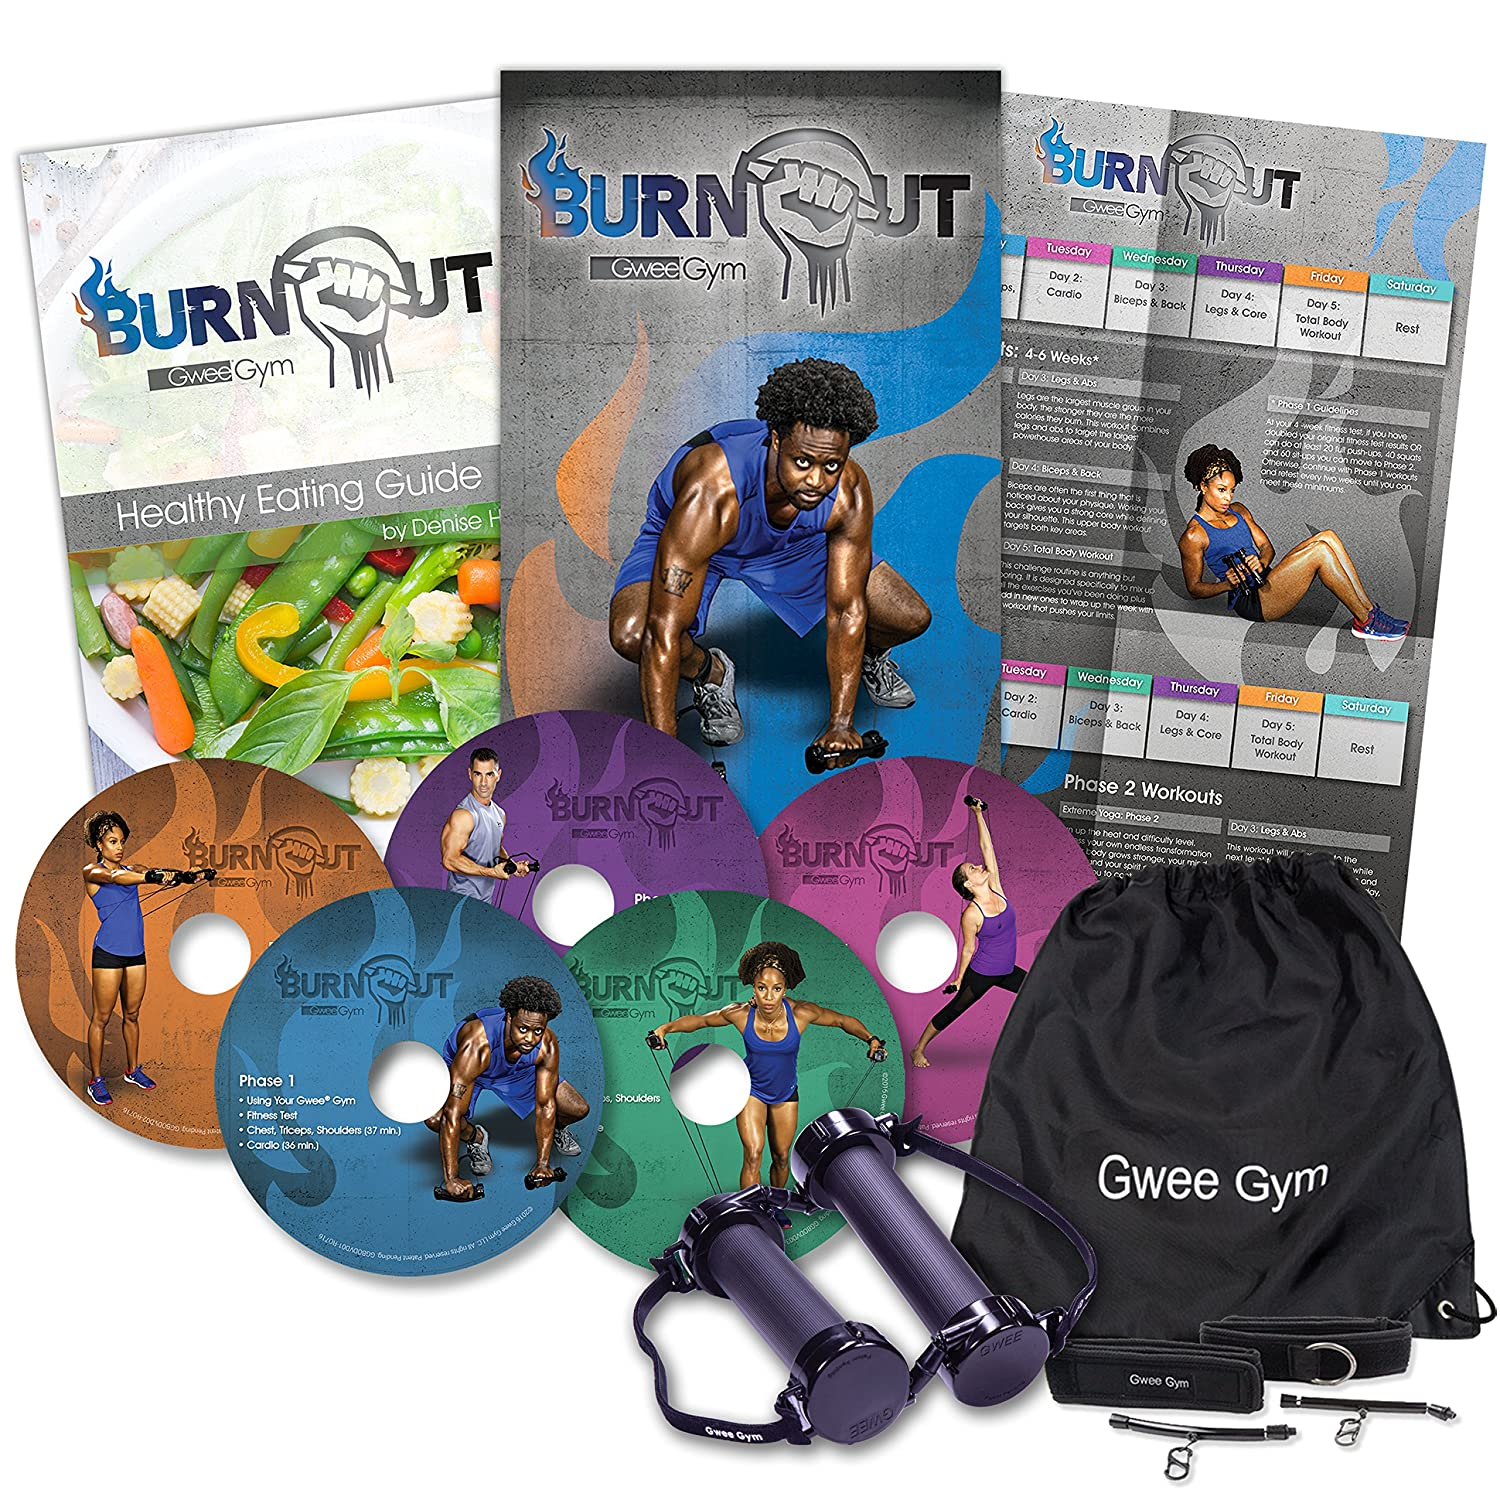 Gwee Gym Burnout High Intensity Fitness Program Based Circuit Works La Nutrition Plan Brochure On Hiit And Ript Complete Weight Loss Resistance Training Includes Pro